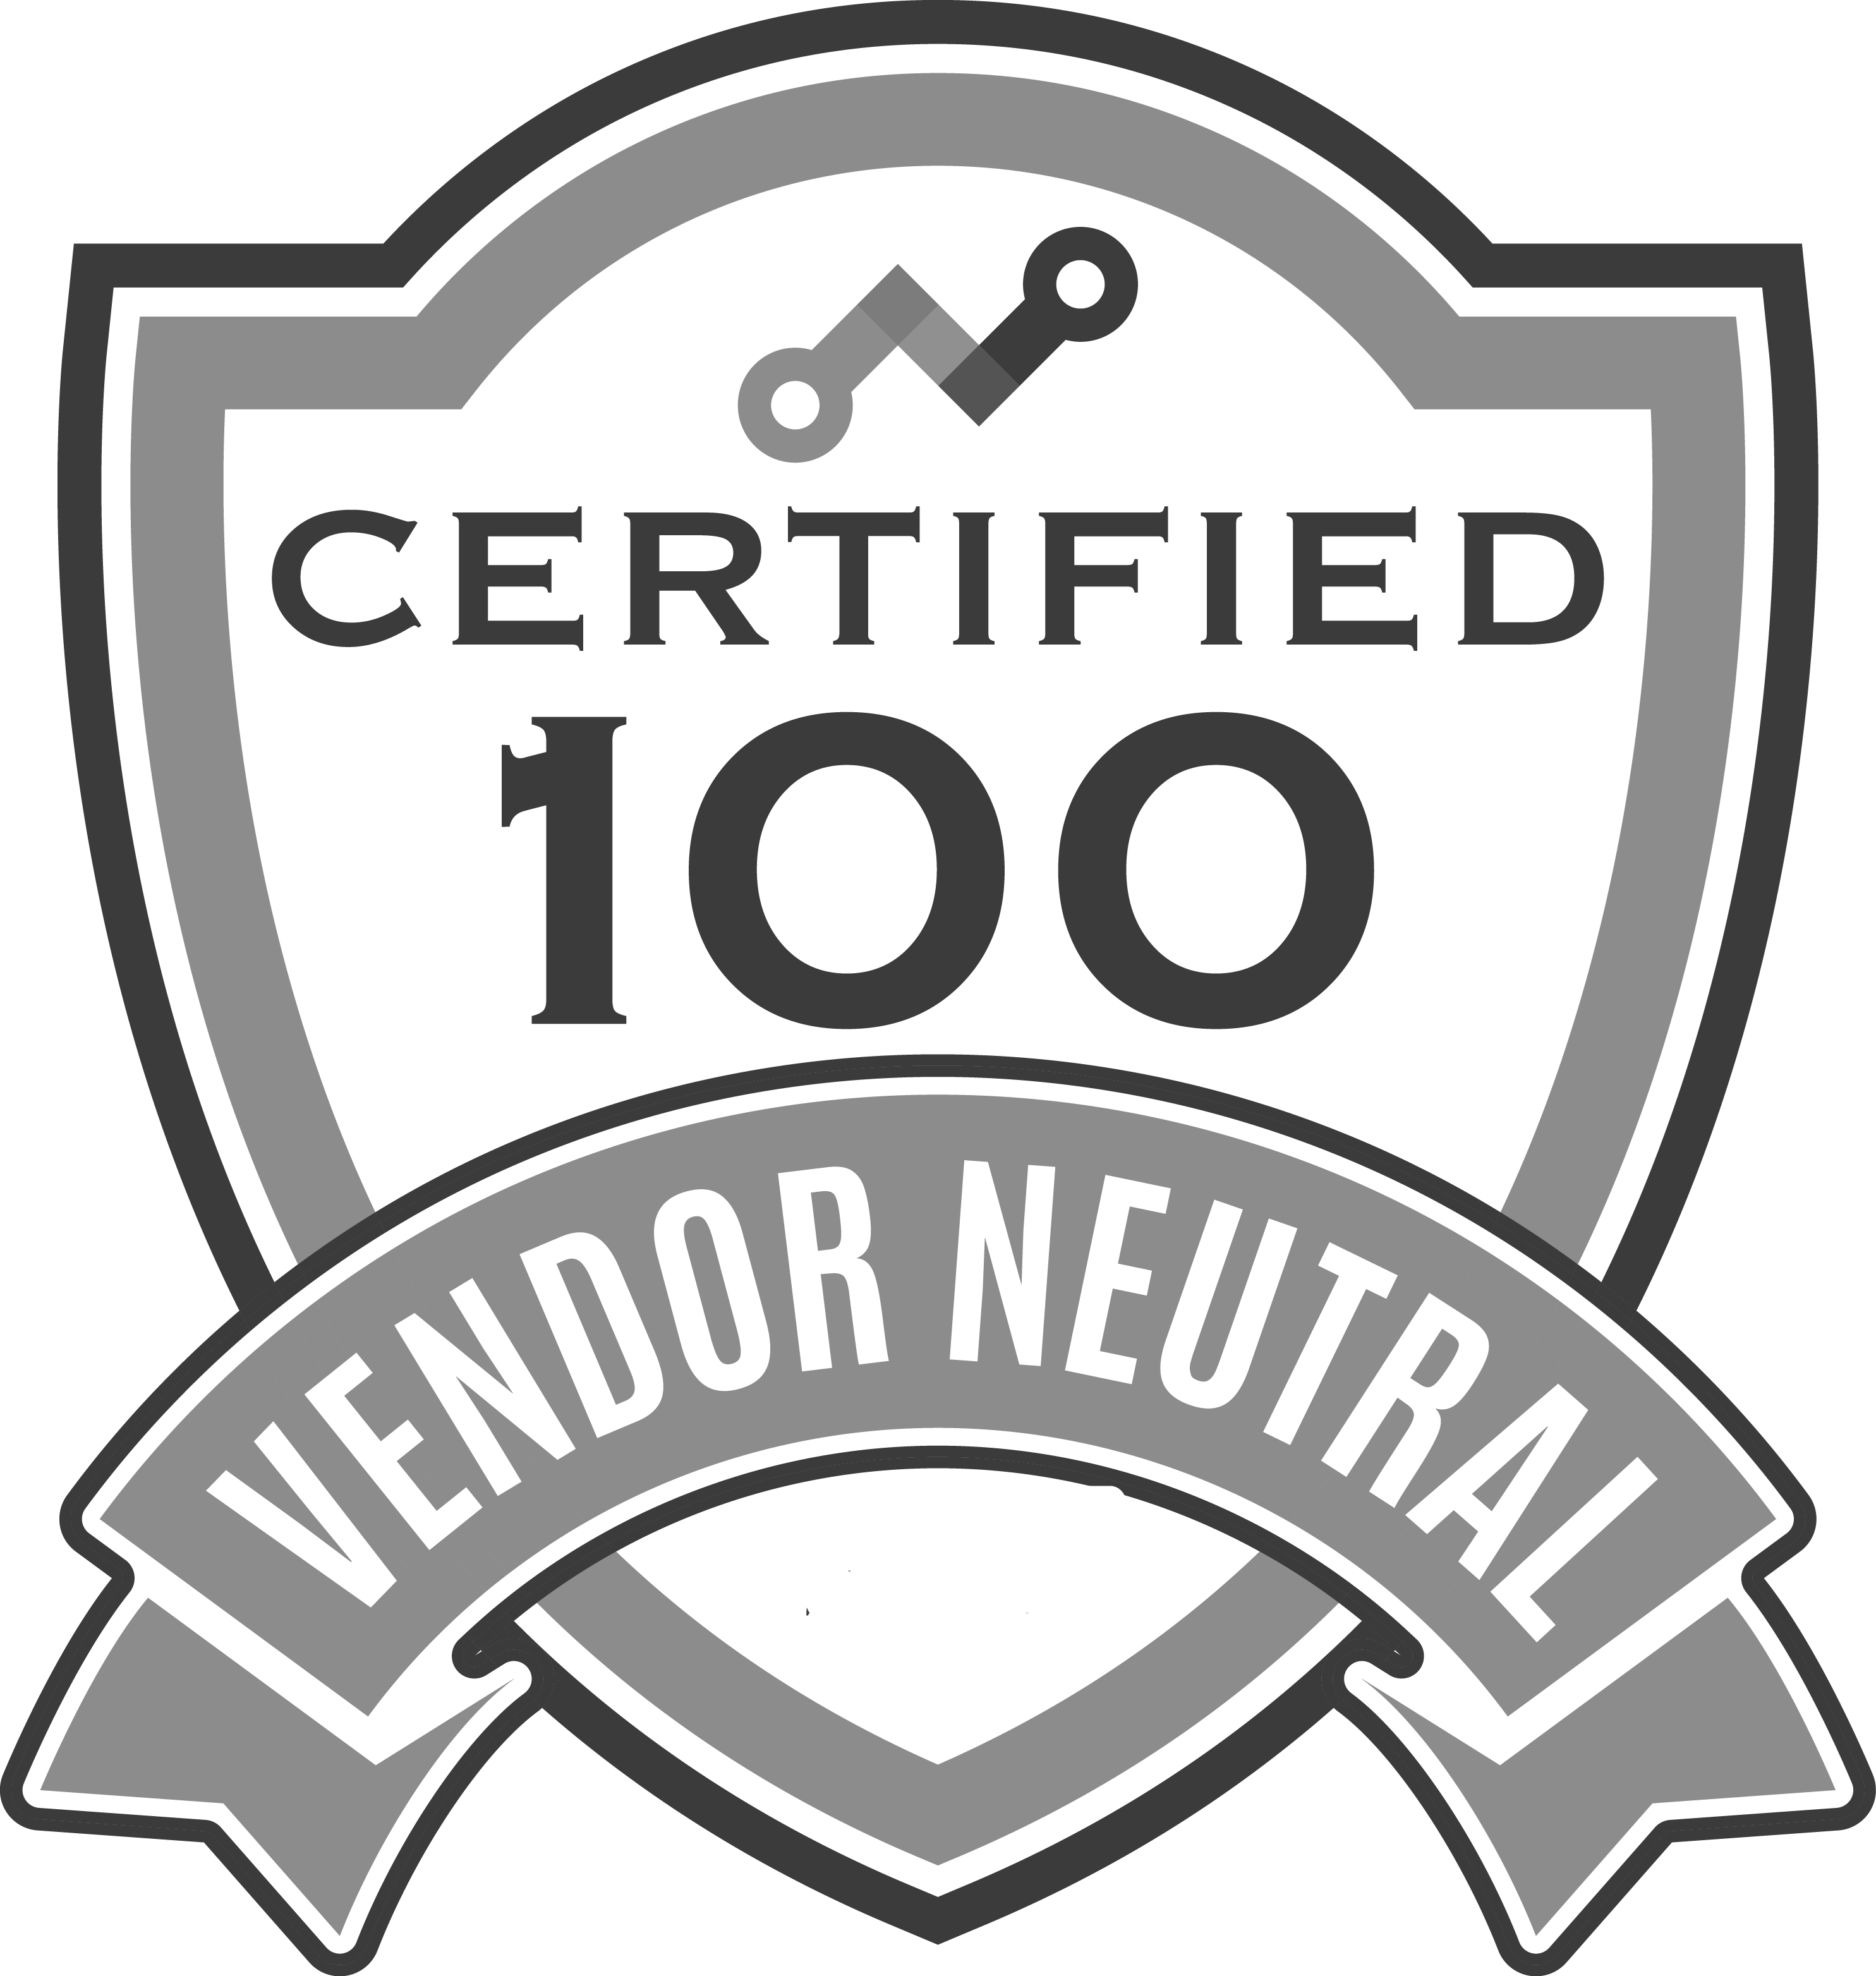 Vendor Neutral Certified 100 SalesTech Vendor Objective Management Group